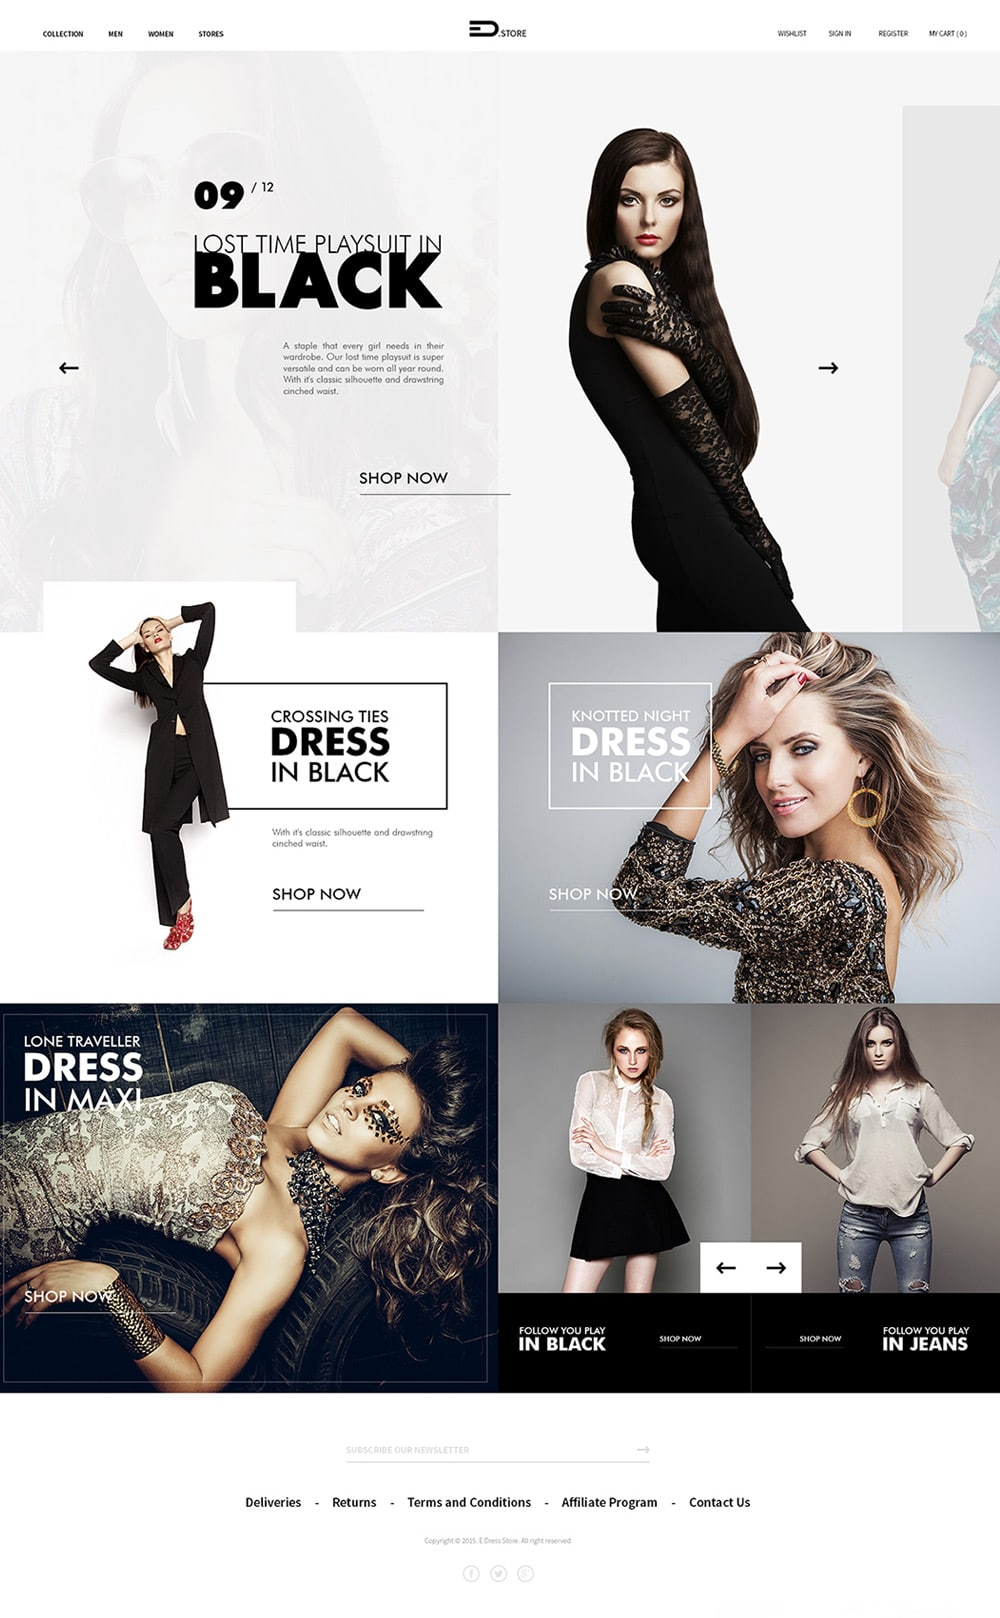 Free ecommerce web templates psd css author edstore fashion store web template psd pronofoot35fo Choice Image